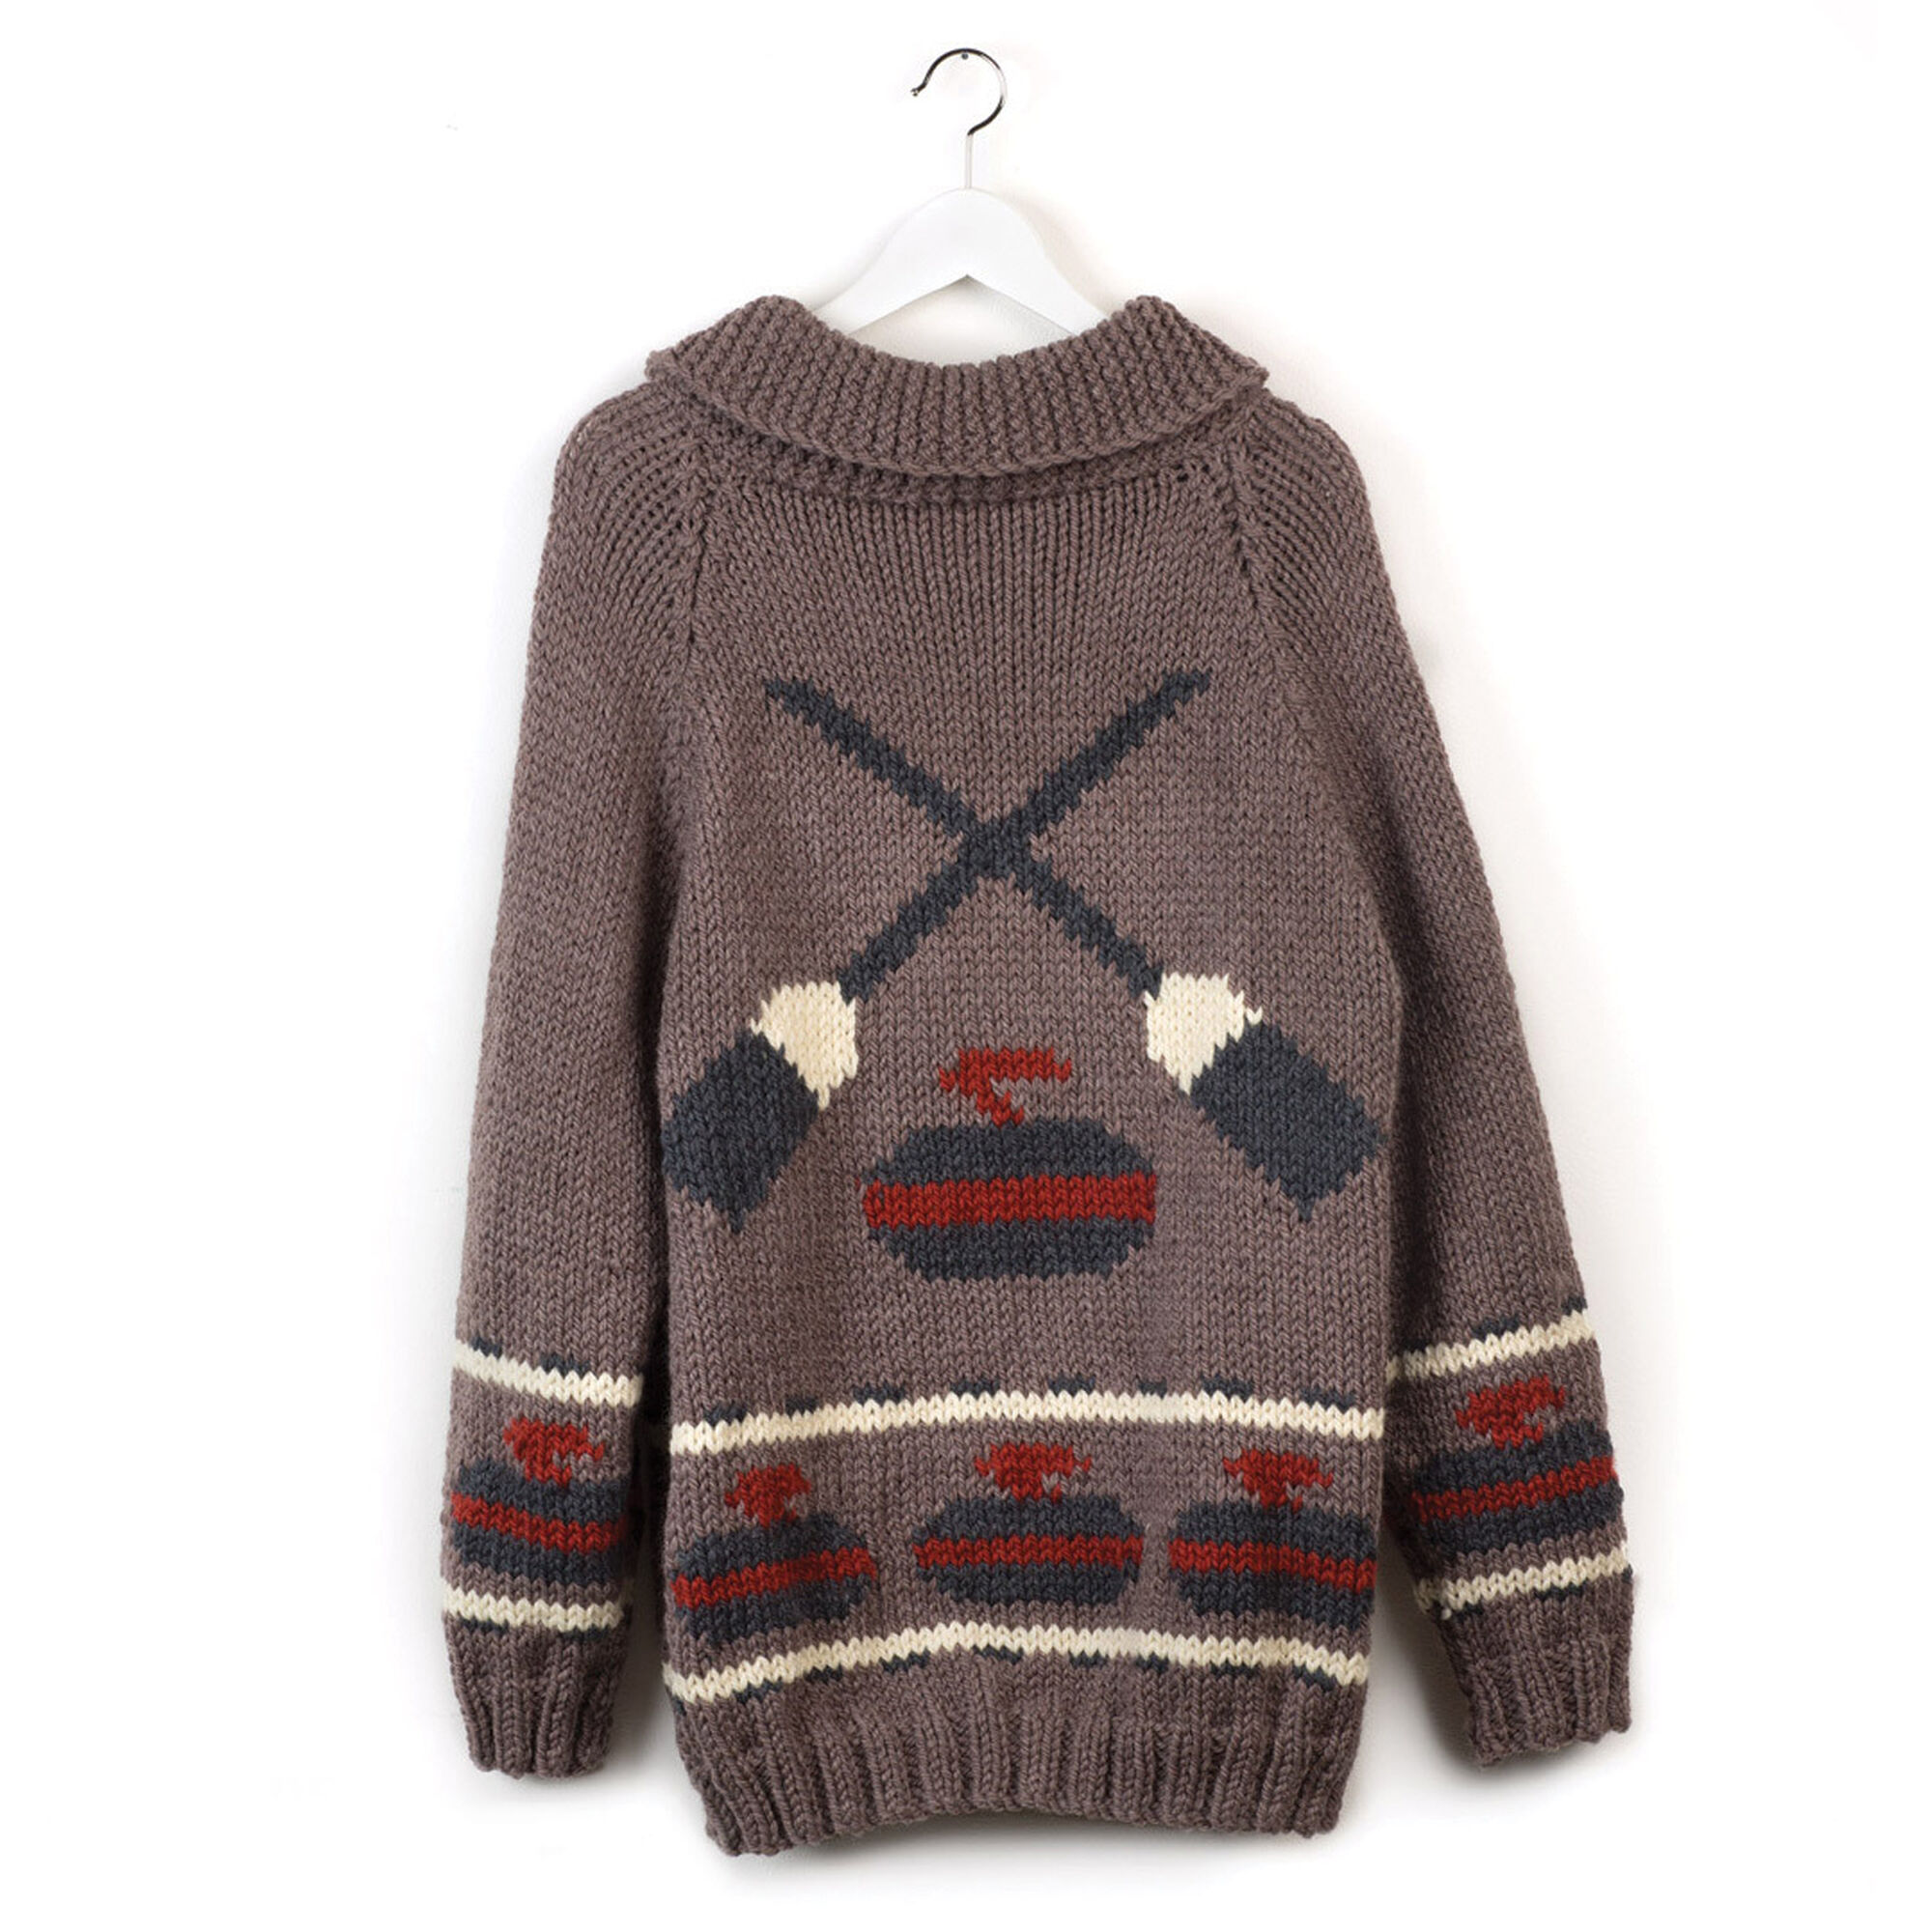 Patons Knit Curling Sweater, His - XS/S | Yarnspirations